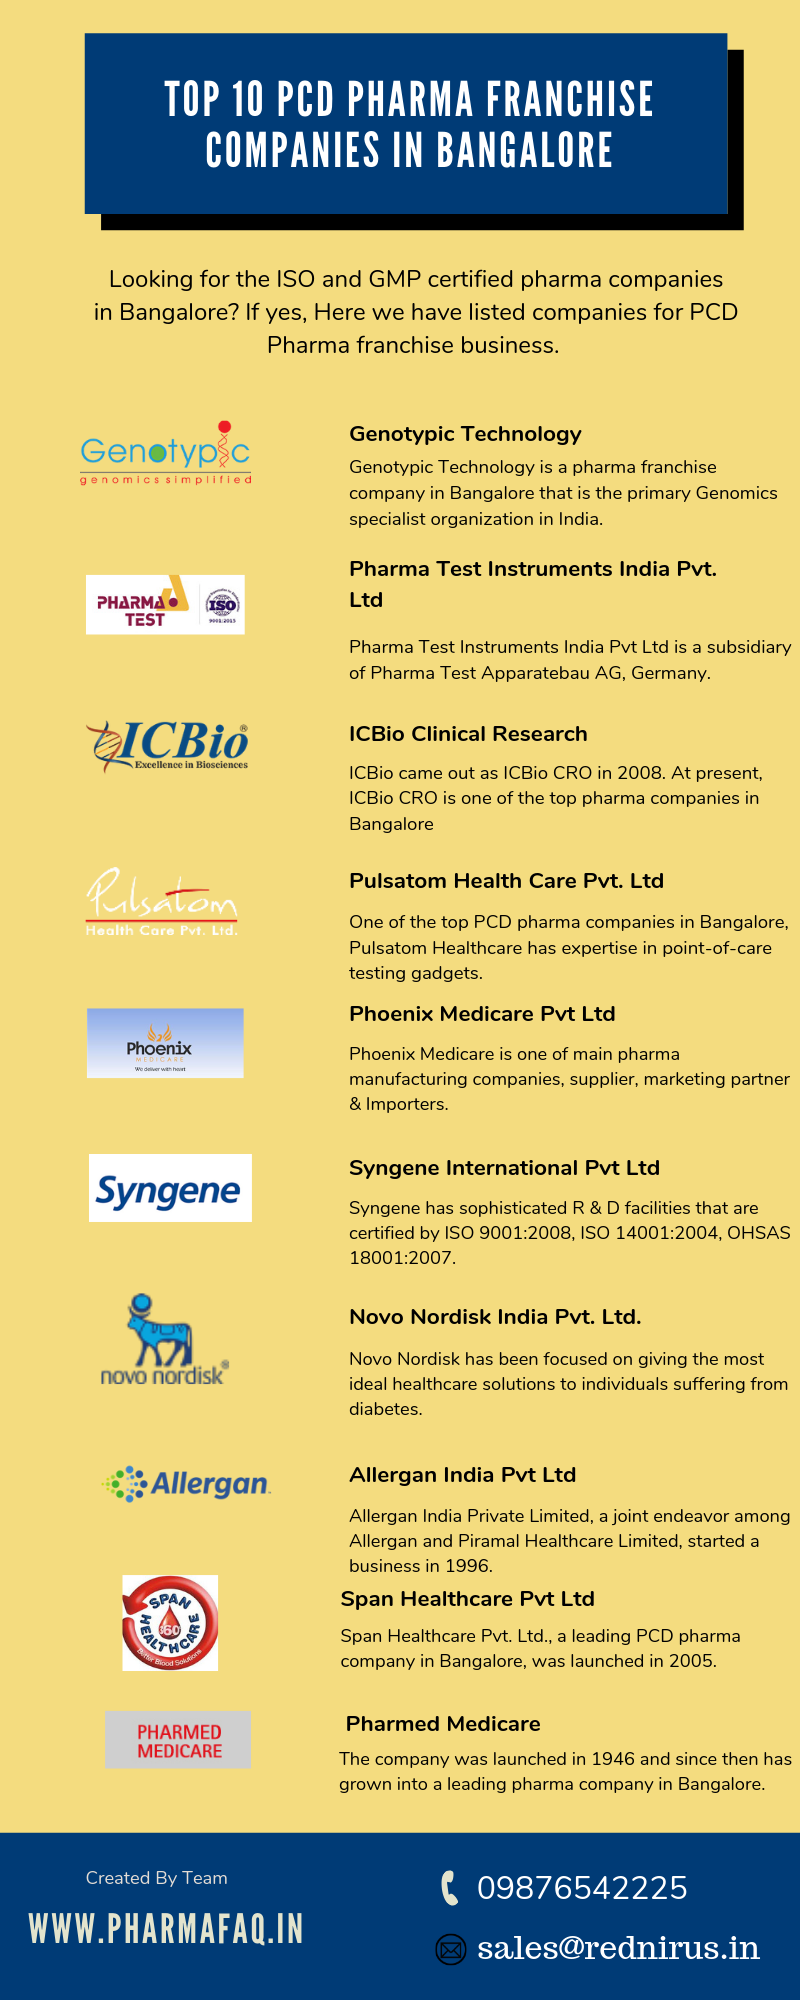 Top 10 PCD Pharma Franchise Companies in Bangalore 2019